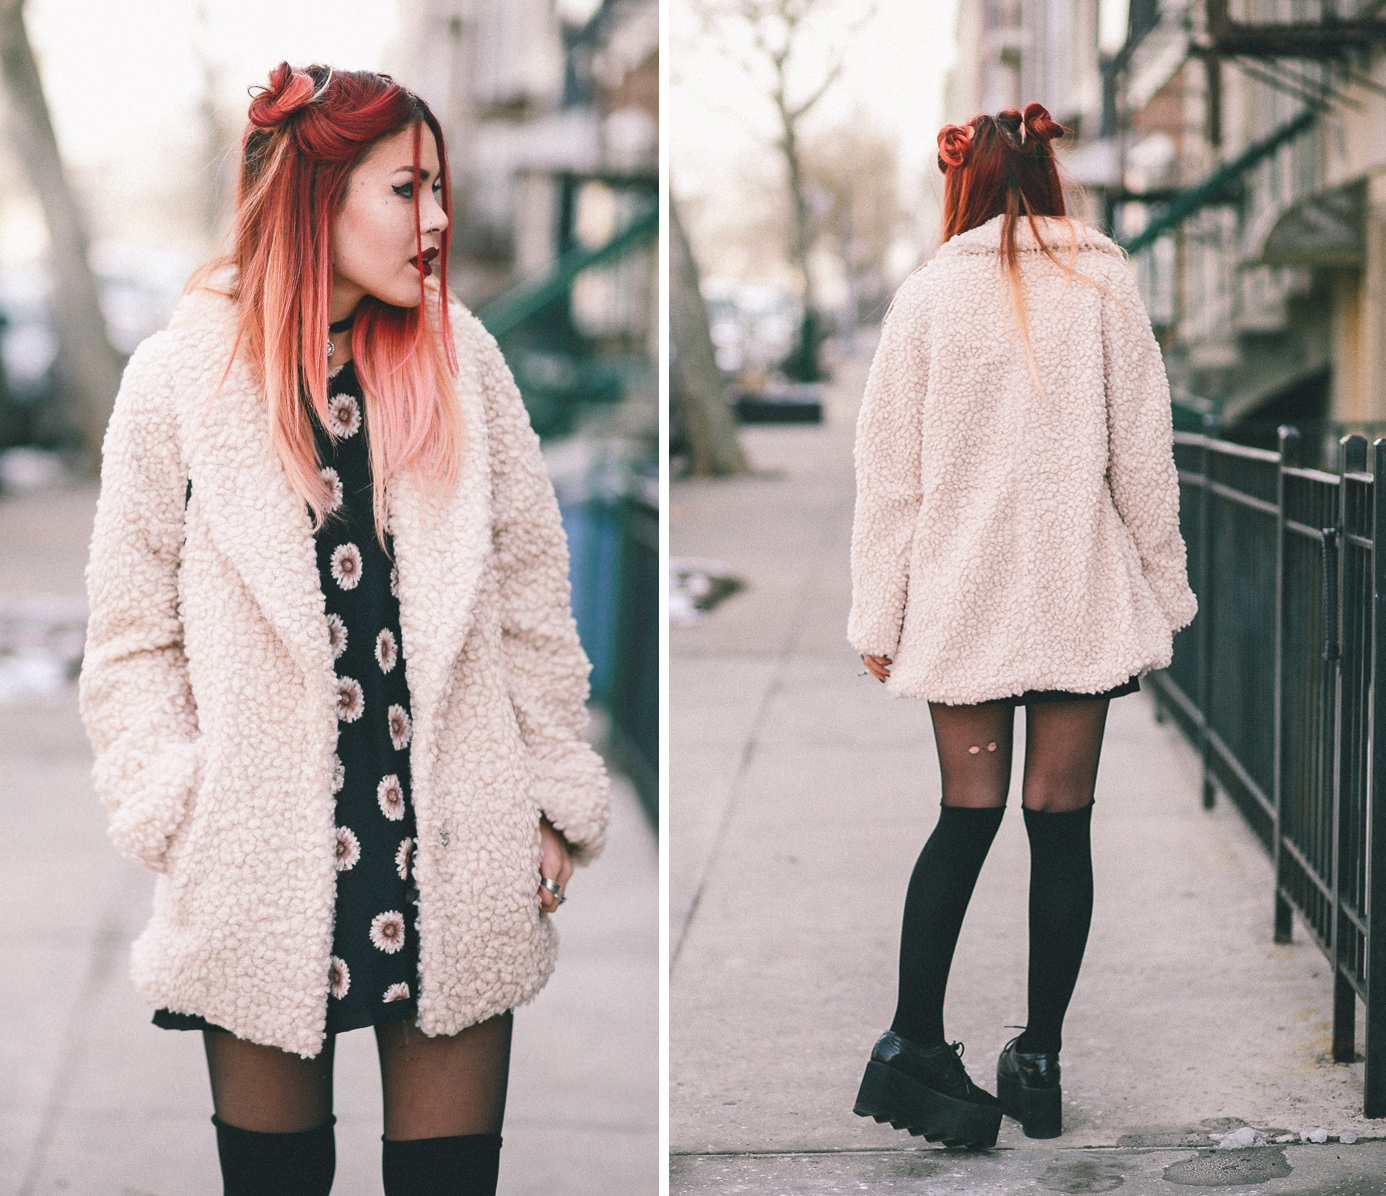 Le Happy wearing Willow & Clay coat and daisy dress